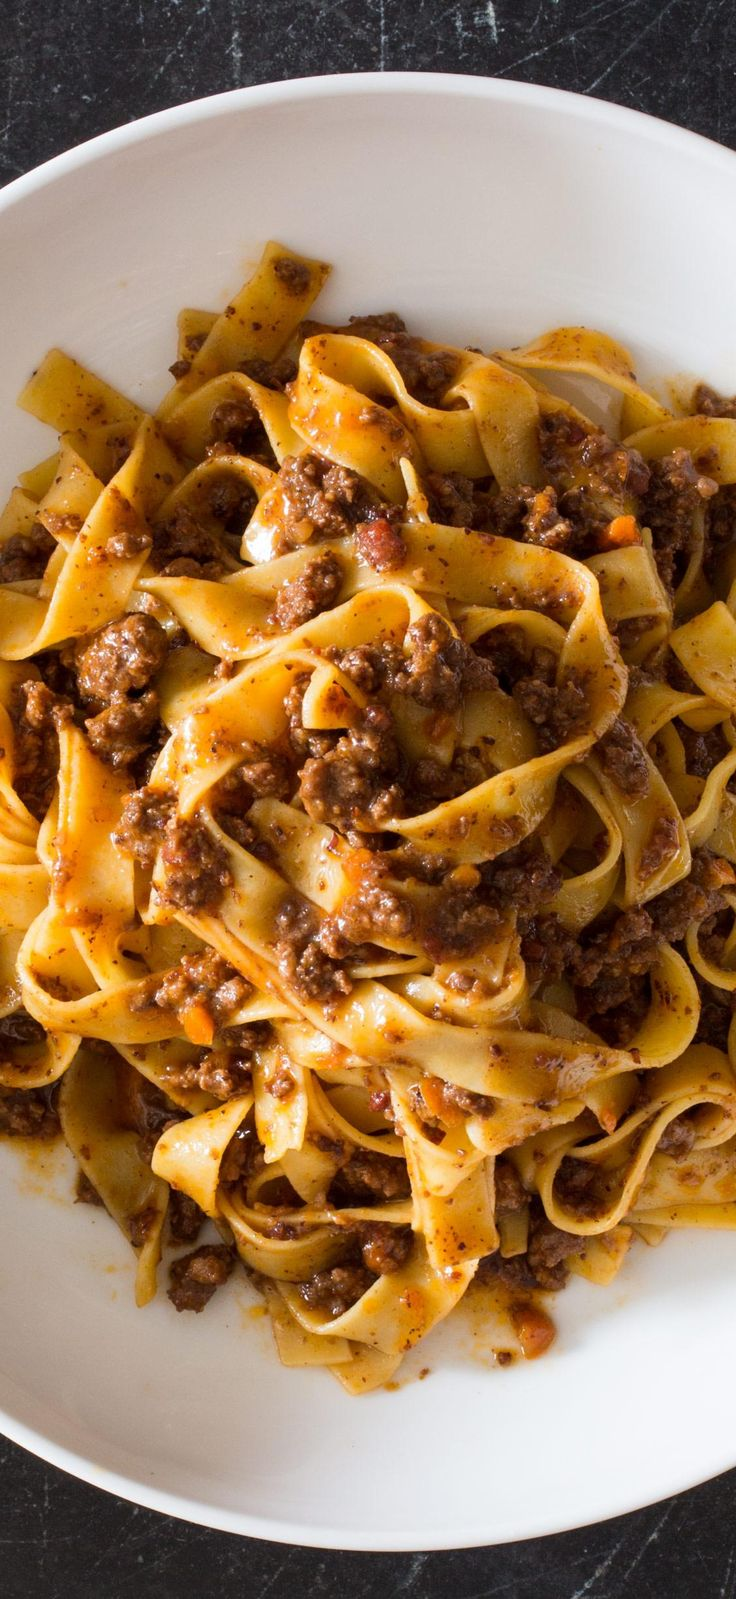 Weeknight Tagliatelle with Bolognese Sauce. Half a dozen meats and hours of pot watching make a lush, deeply savory version of this Italian ragu. We wanted those results with fewer ingredients in half the time.